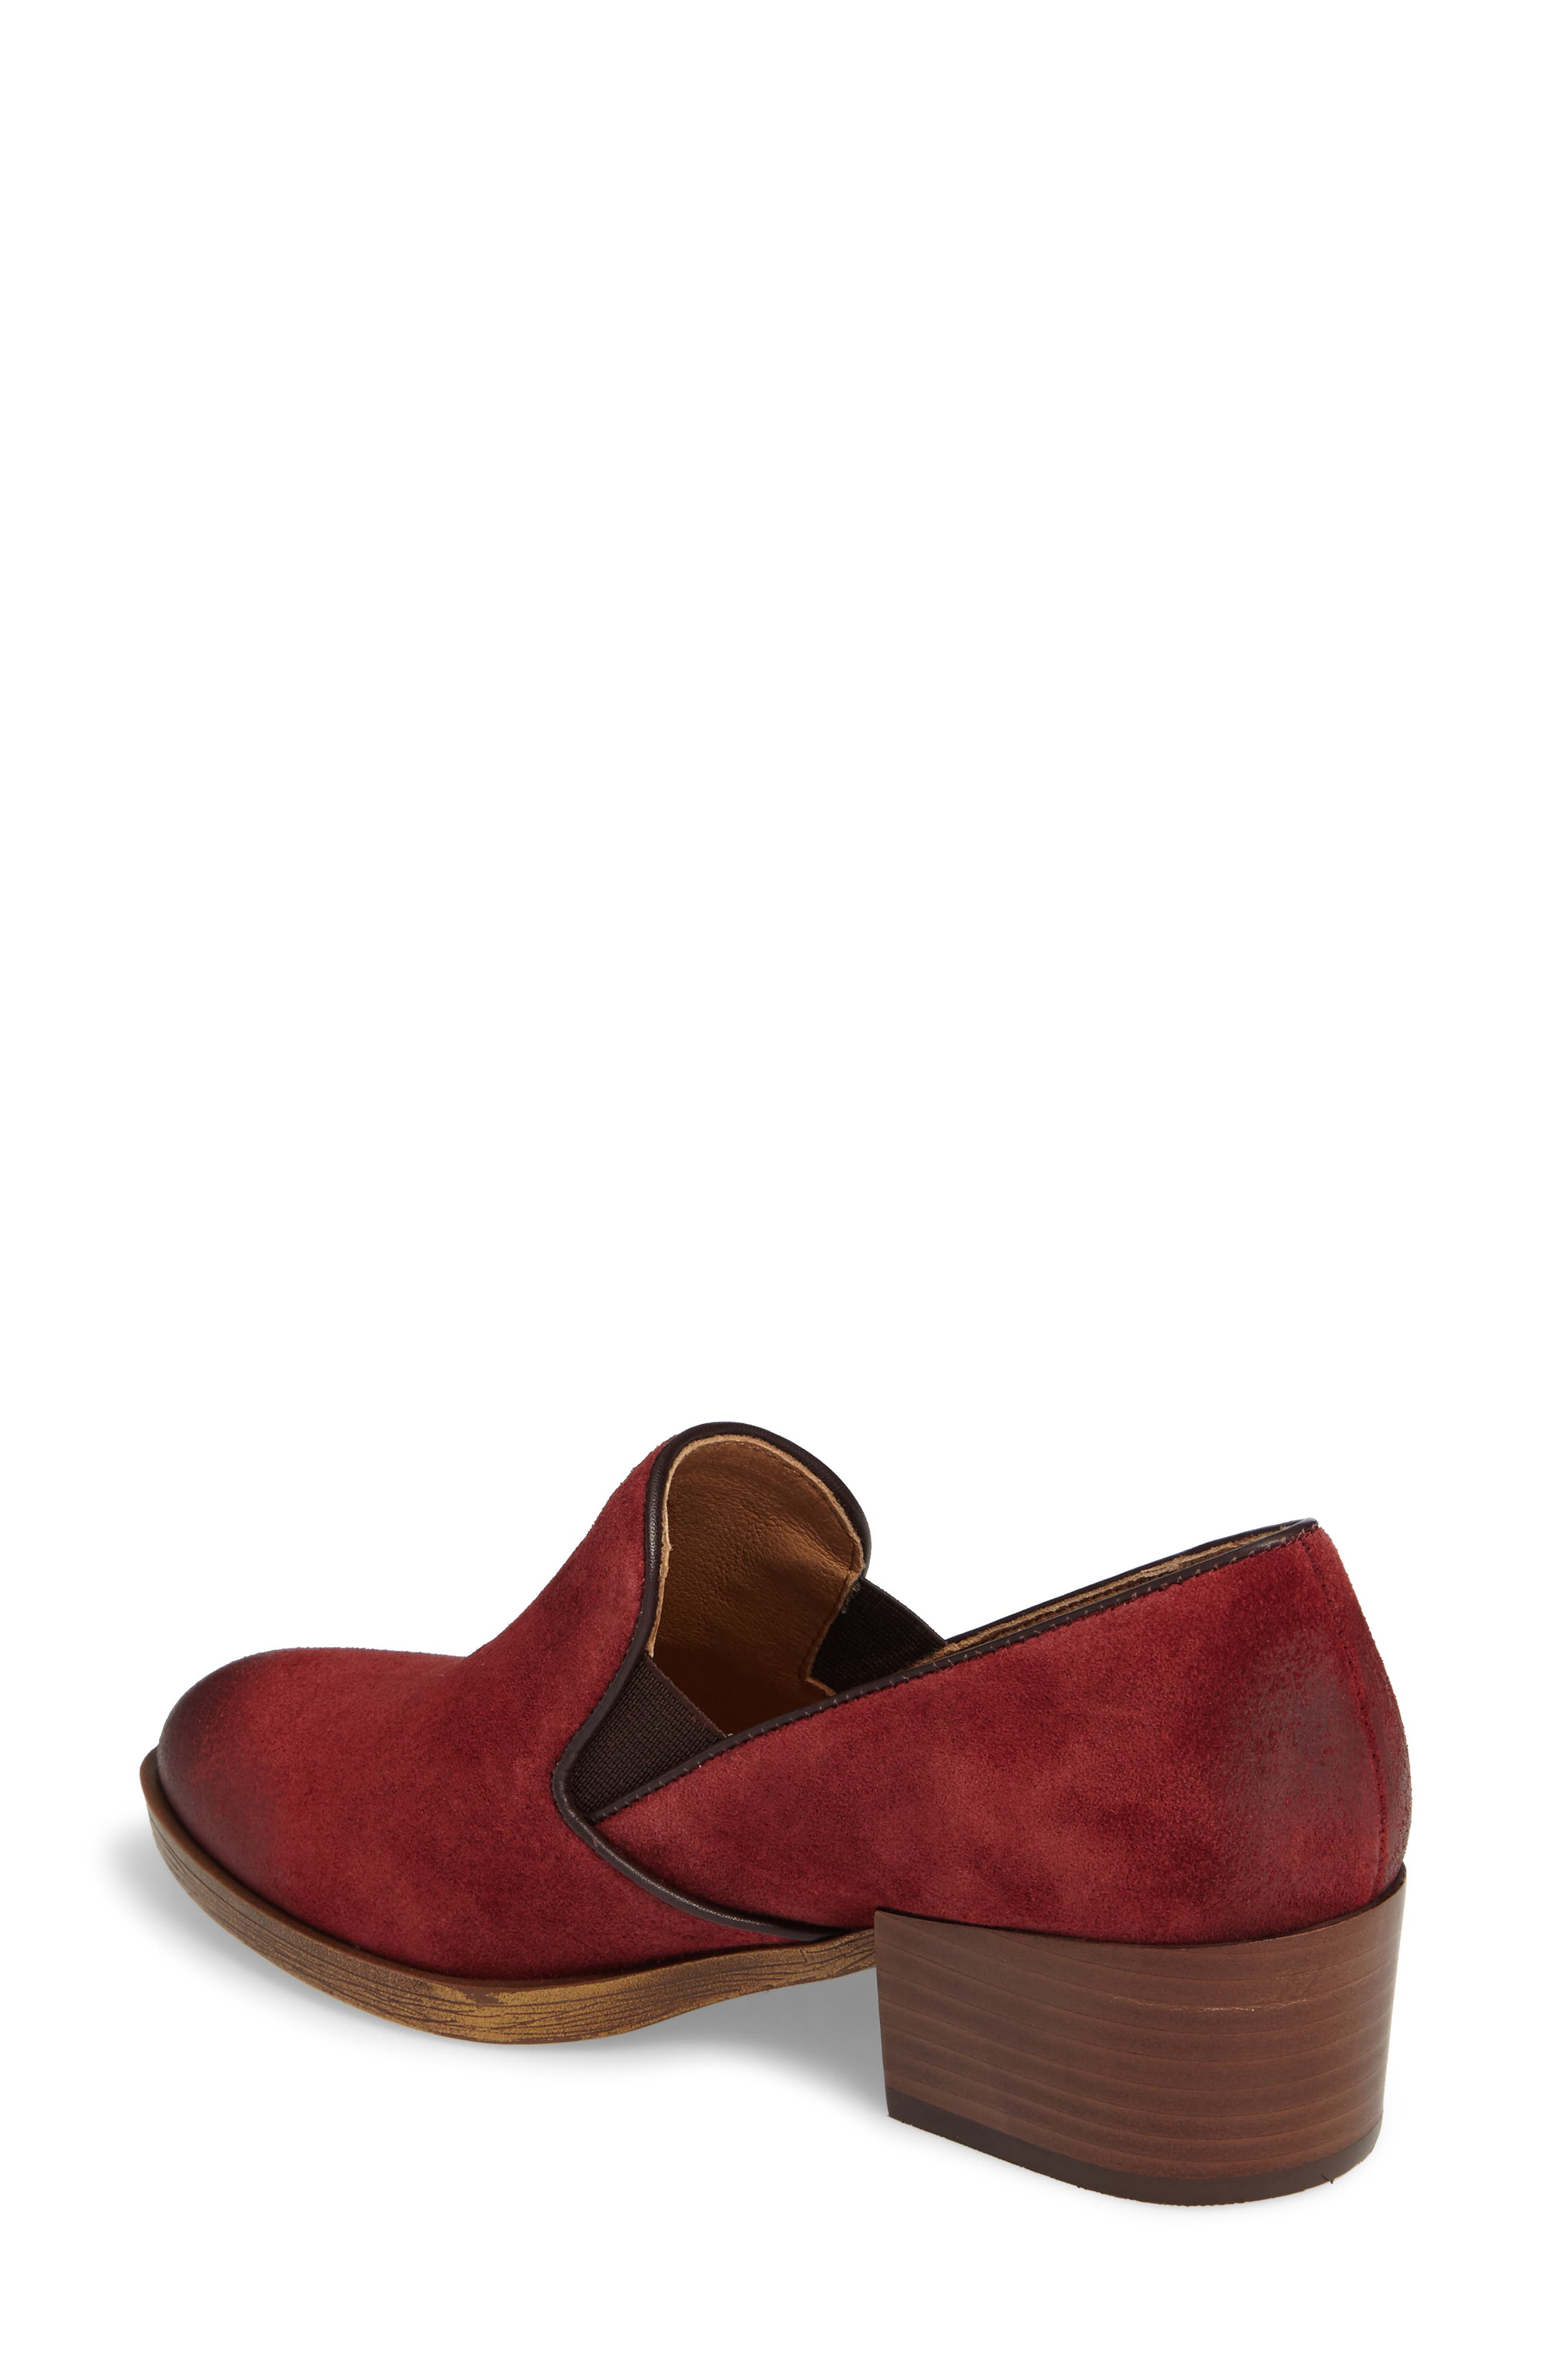 Velina Pump,                             Alternate thumbnail 2, color,                             Bordo Suede